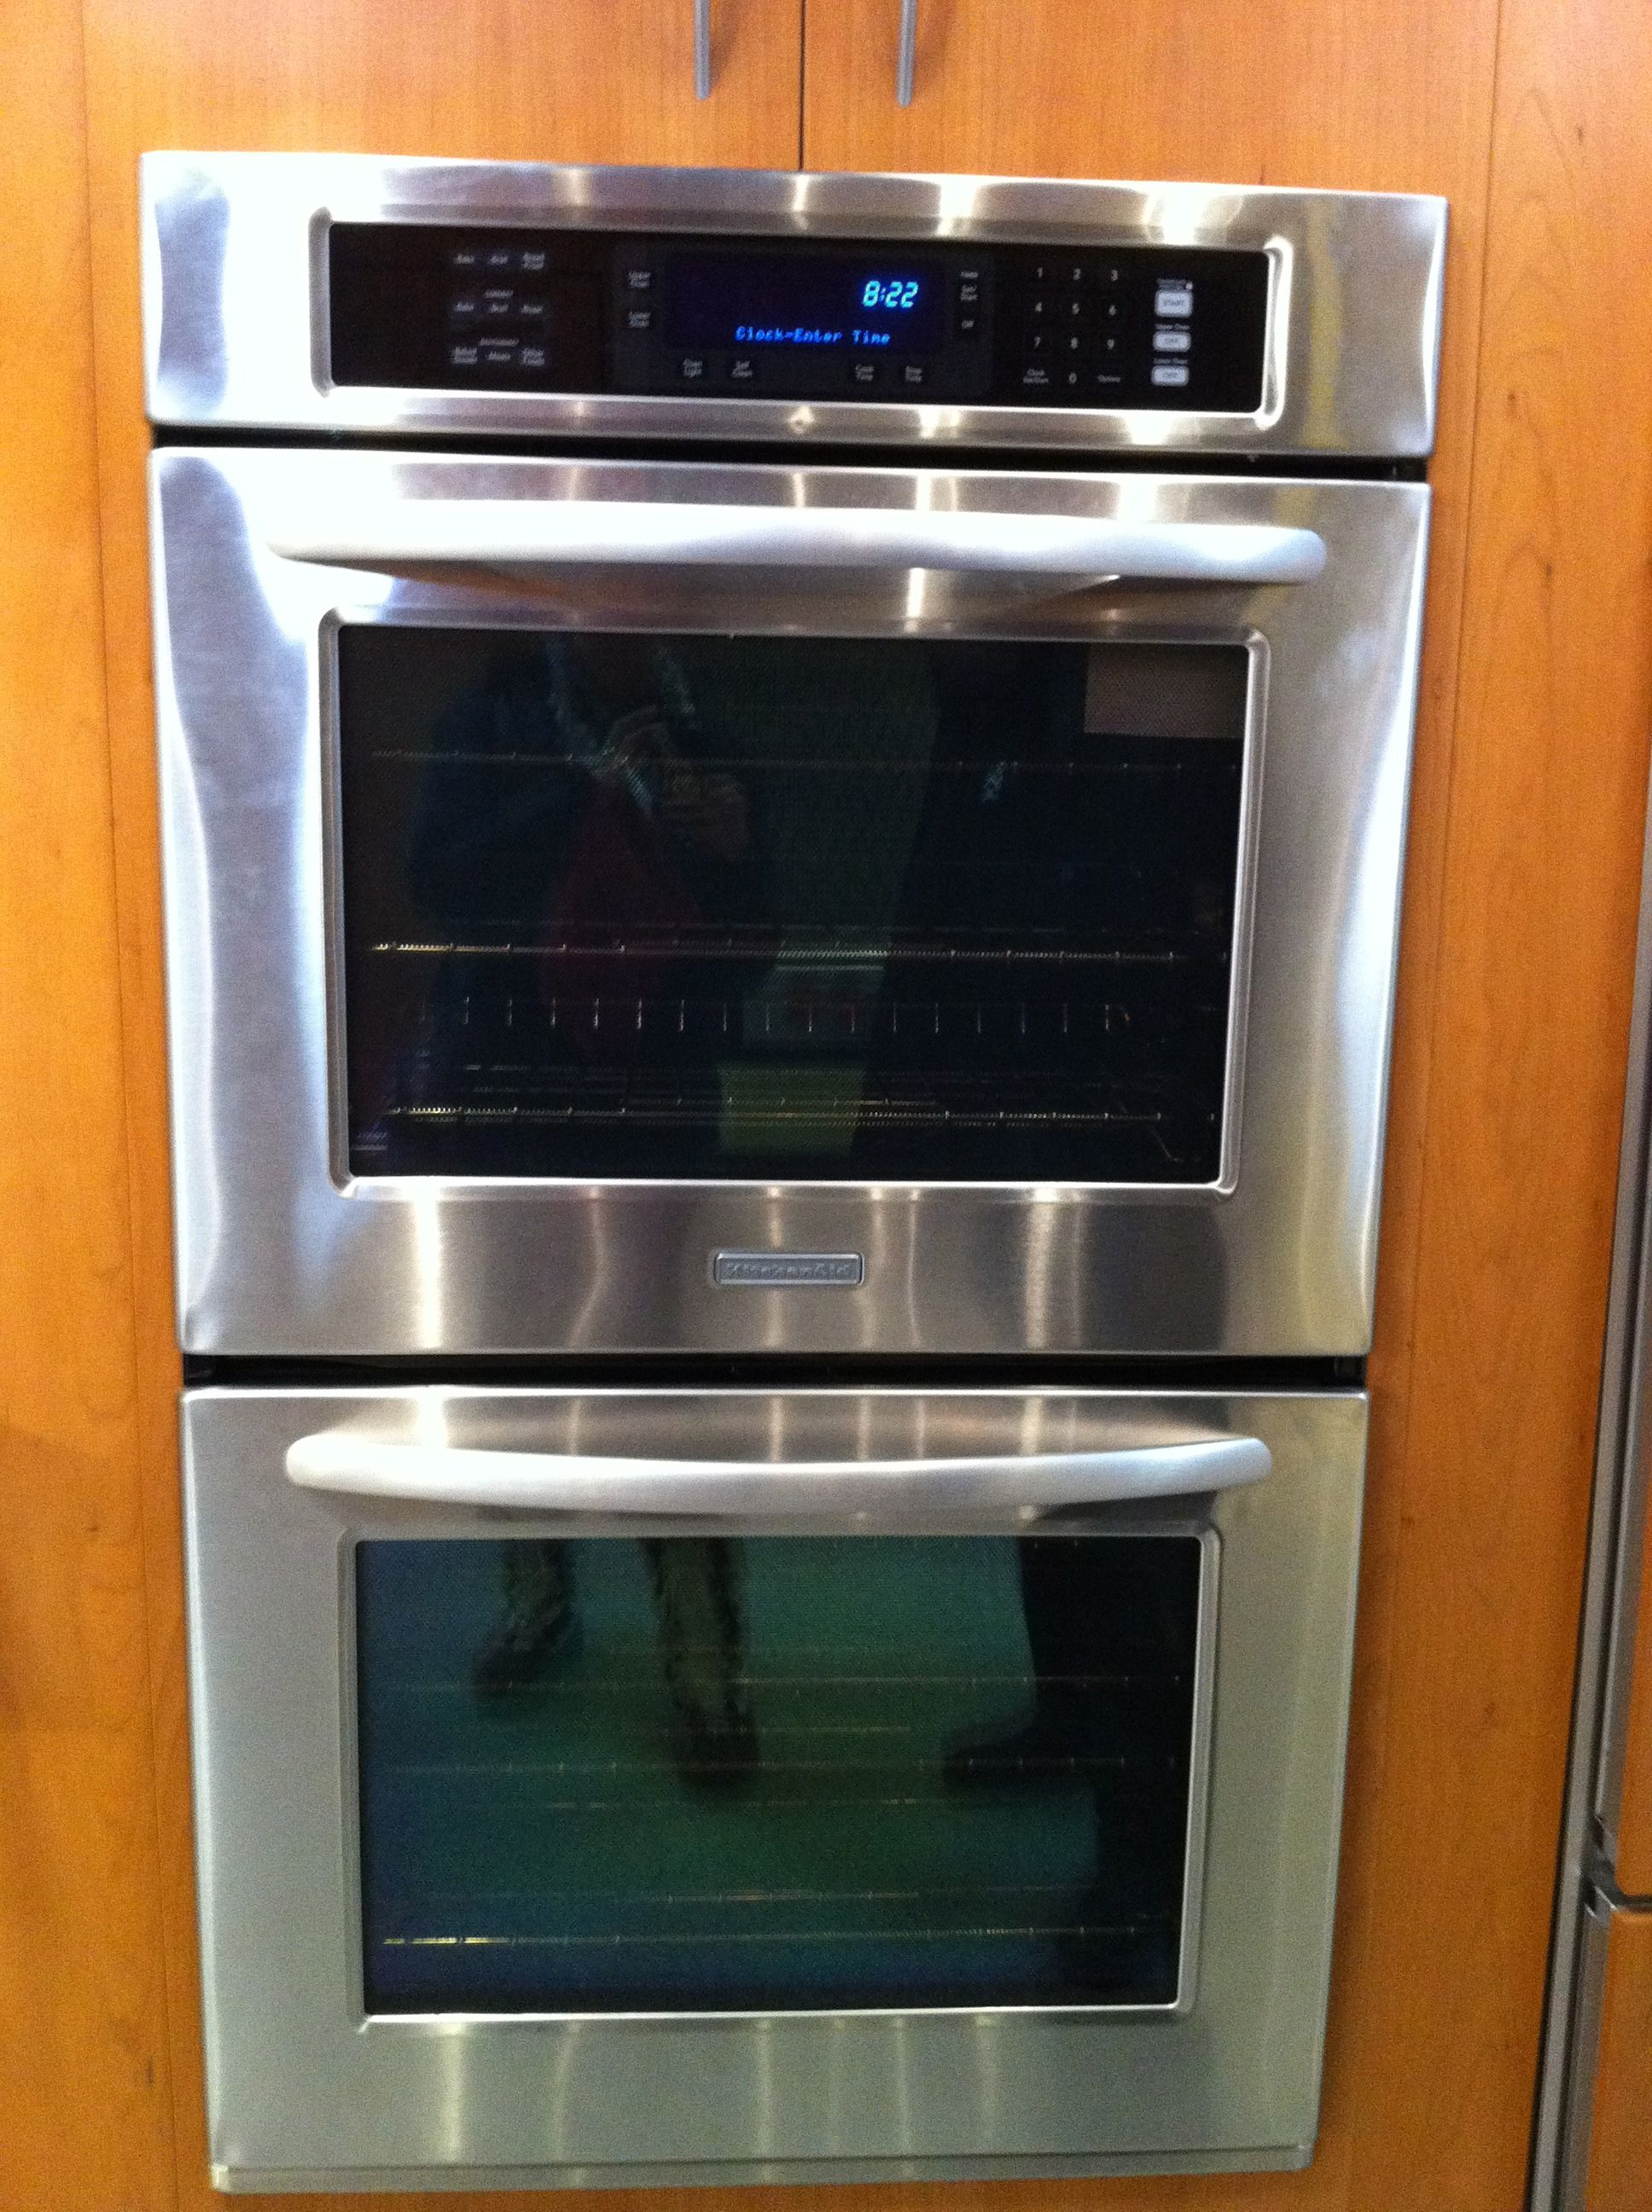 Kitchenaid double wall oven drool